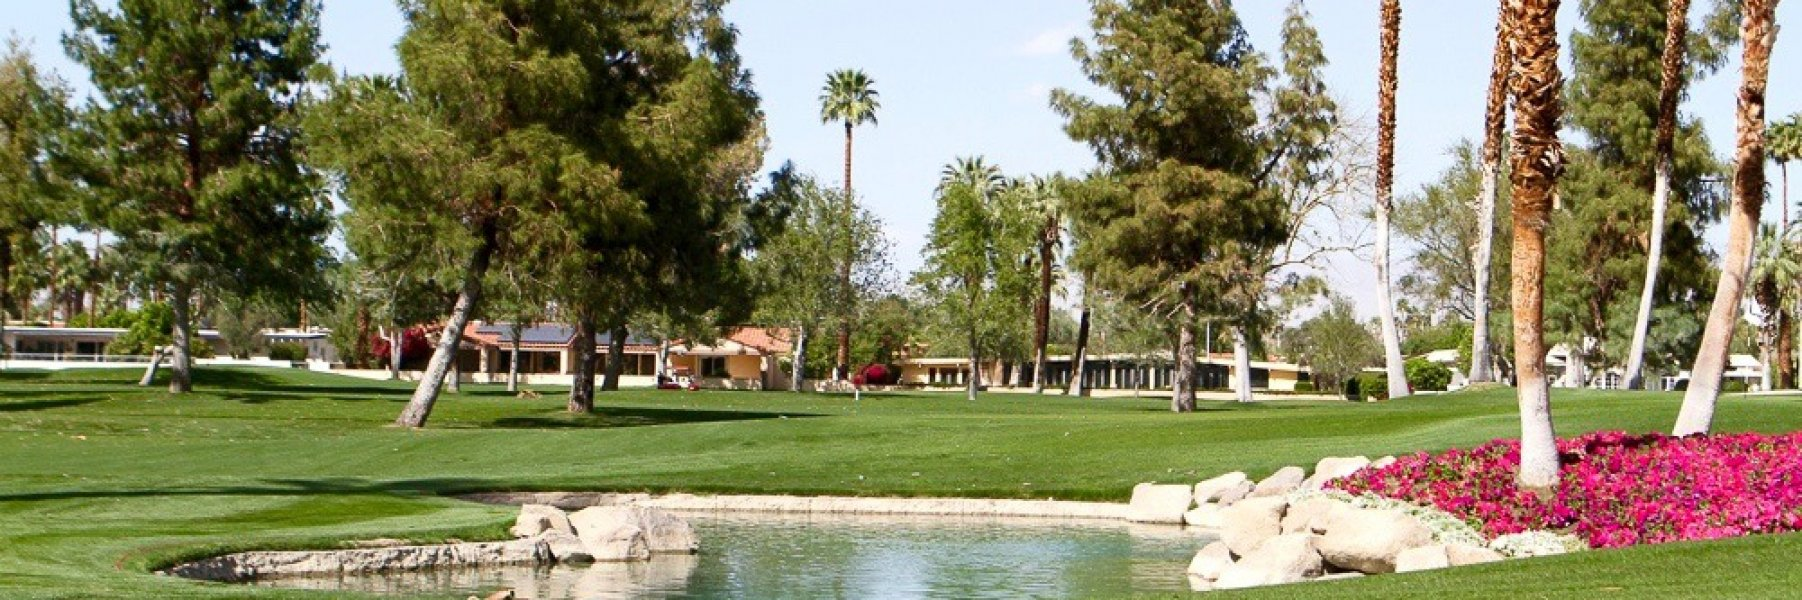 Thunderbird Country Club is a community of homes in Rancho Mirage California